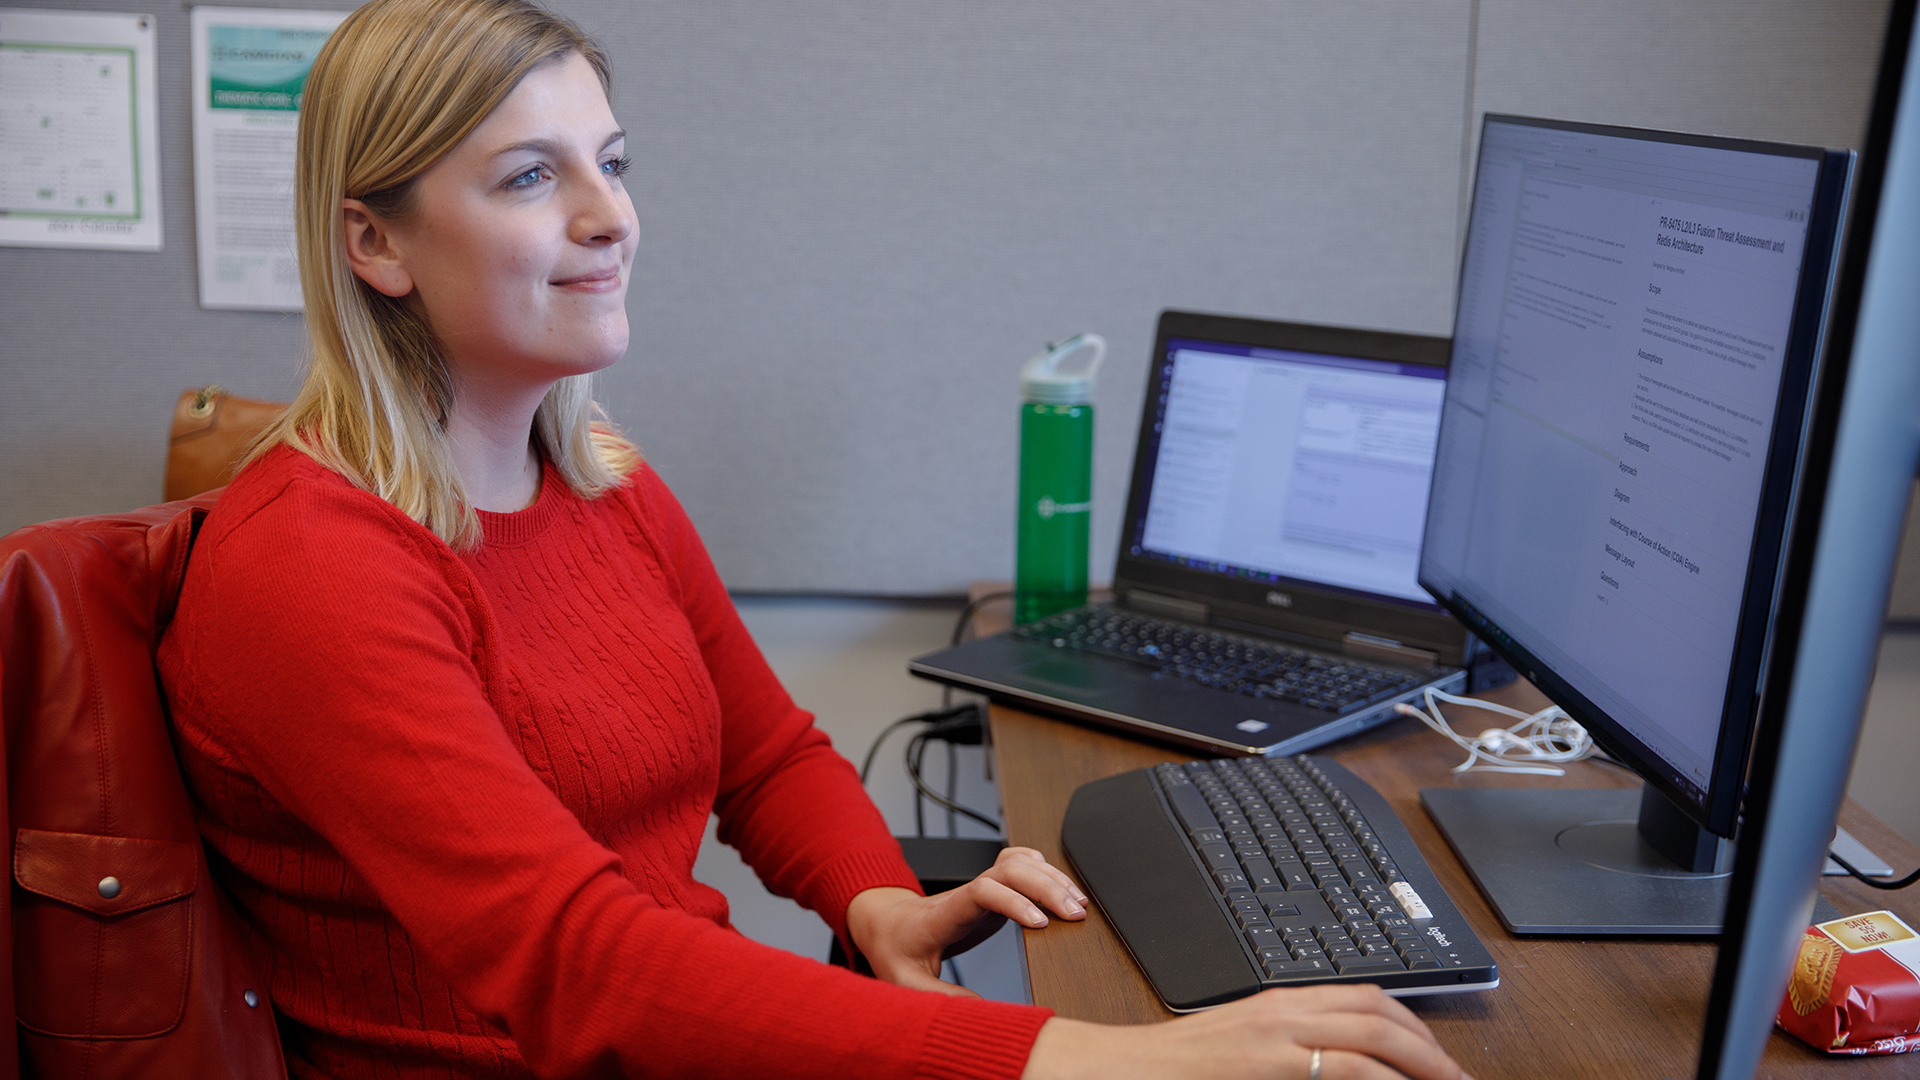 A female student in red works on a computer and 3 screens